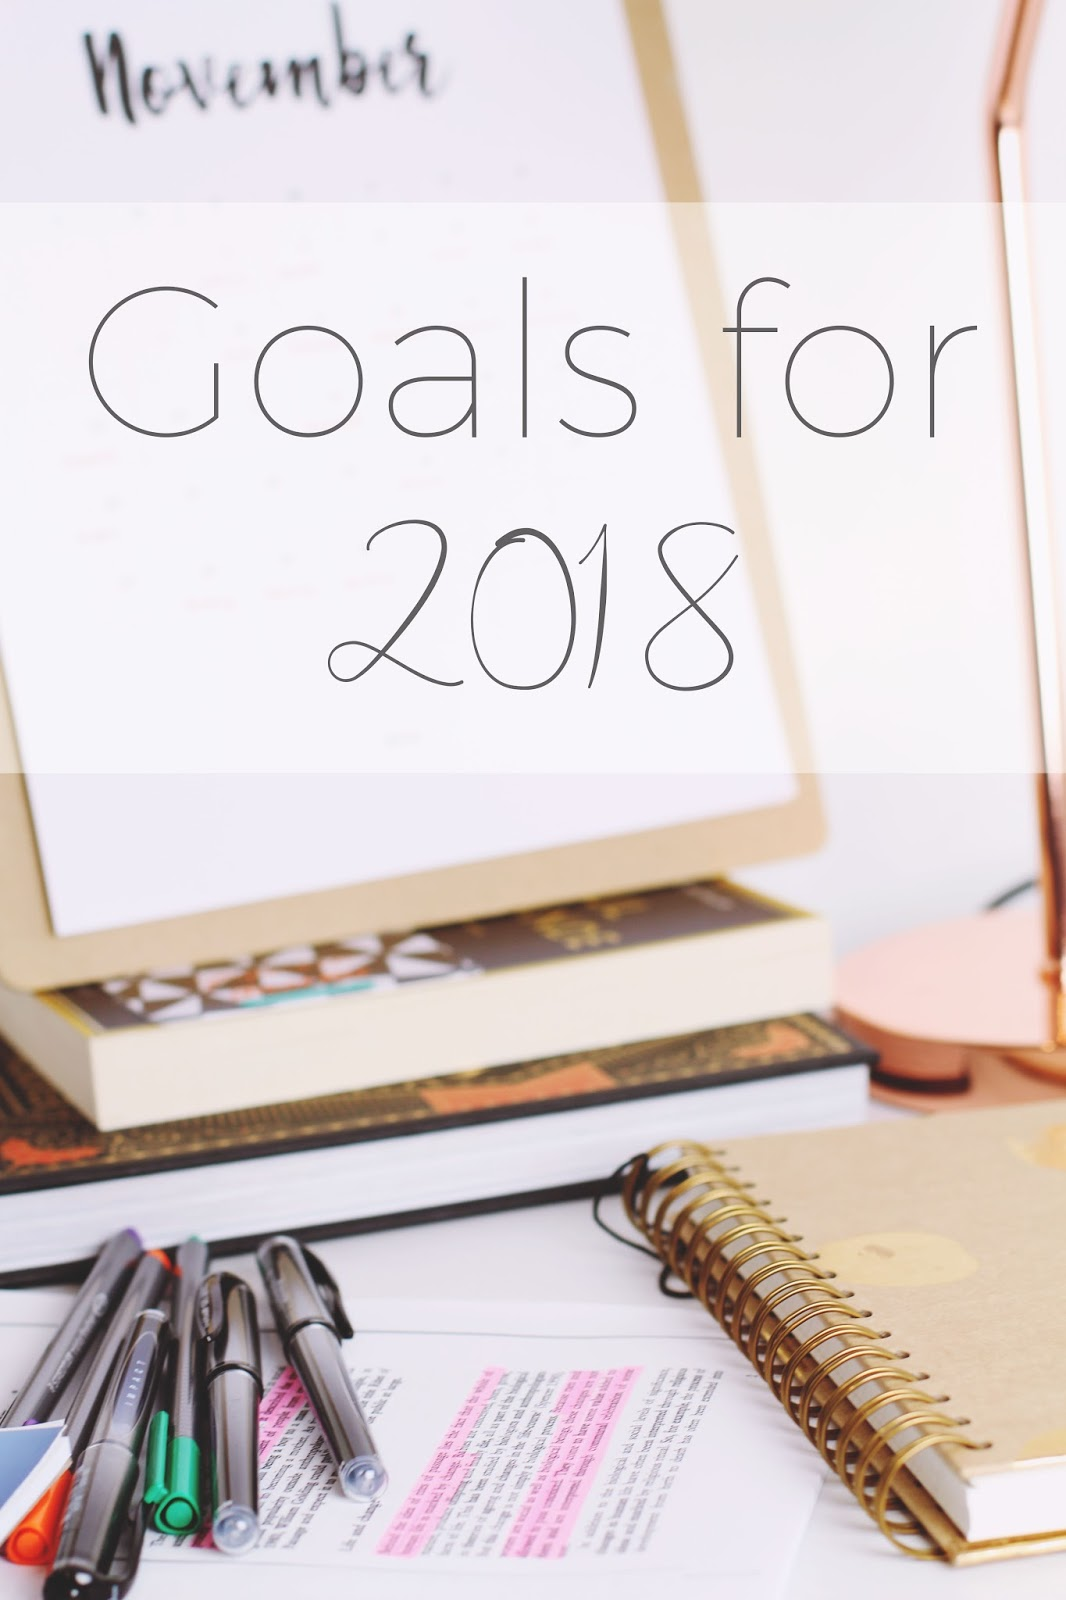 2018 blog goals resolutions